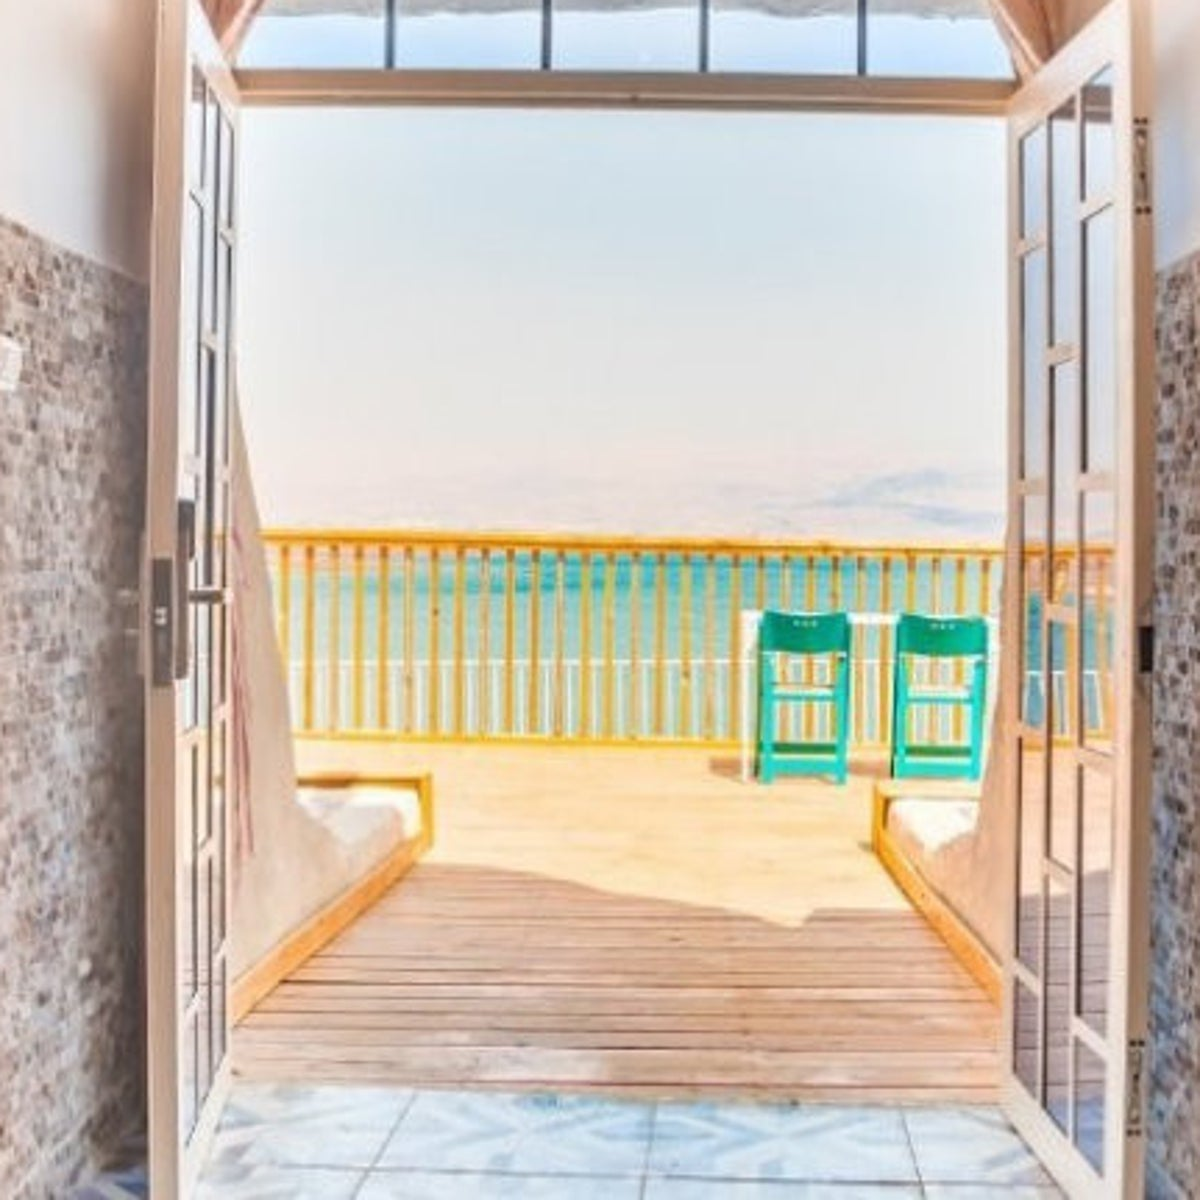 Biankini Village Resort on the Dead Sea's northern shore. Now a room could be yours for less than $750 a month.